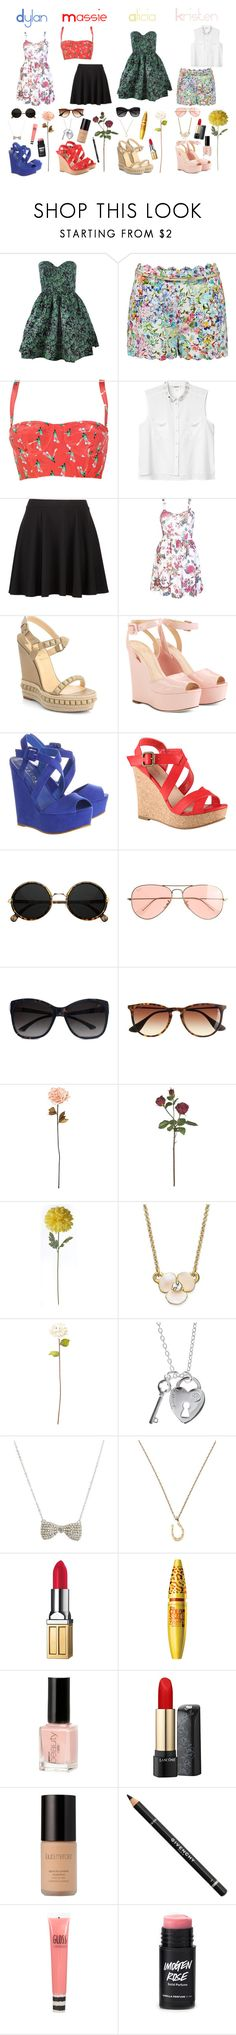 """""""The Clique- Floral"""" by daniellenicole ❤ liked on Polyvore featuring Rachel Antonoff, Forever New, Tucker, Monki, Christian Louboutin, Cole Haan, Office, ALDO, J.Crew and GUESS by Marciano"""